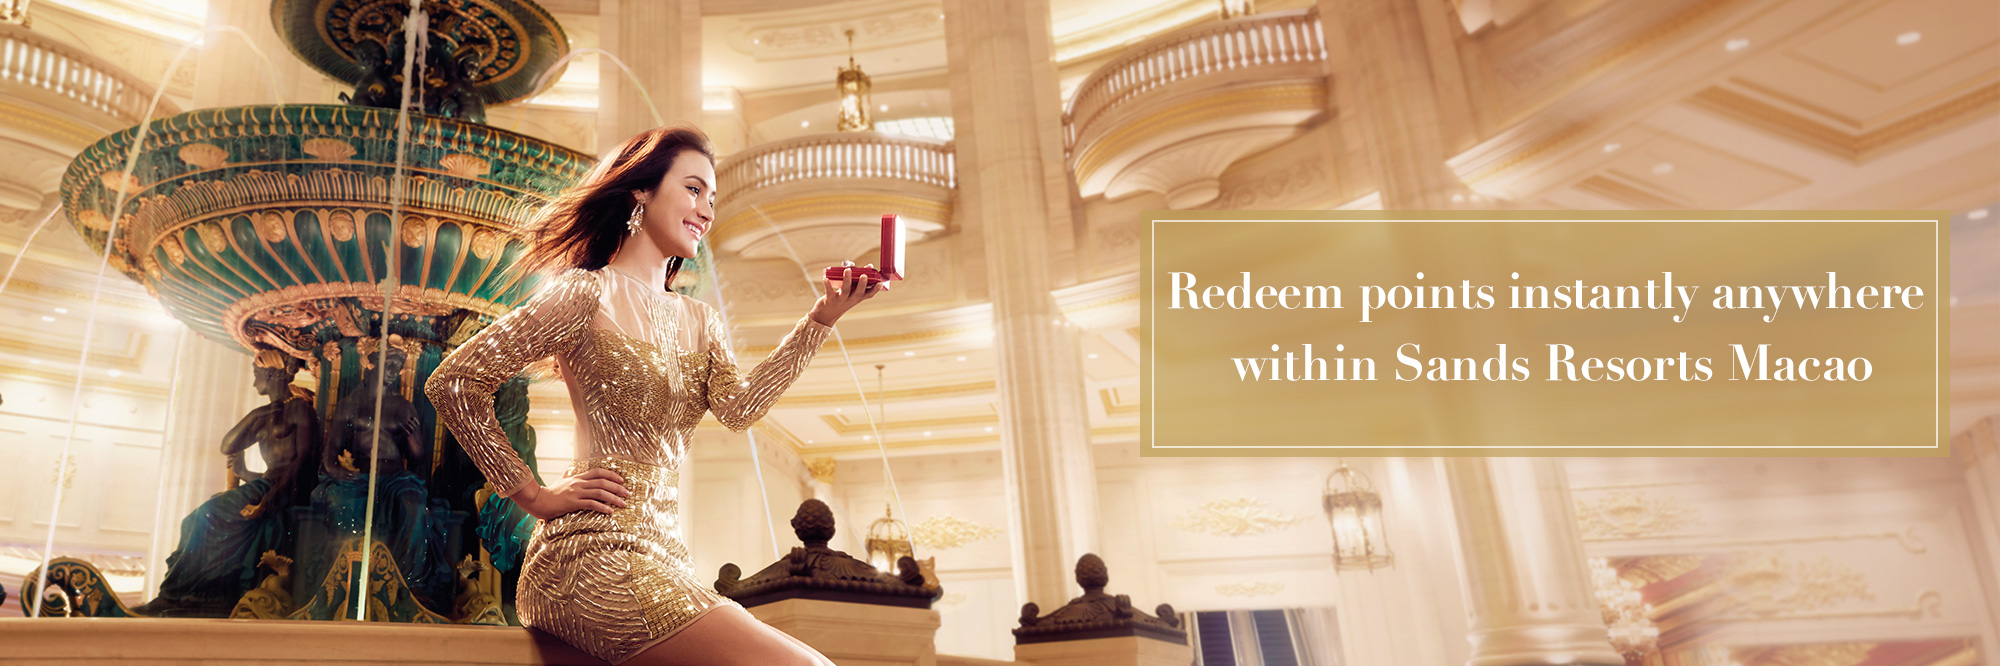 Sands Lifestyle Redeem Points